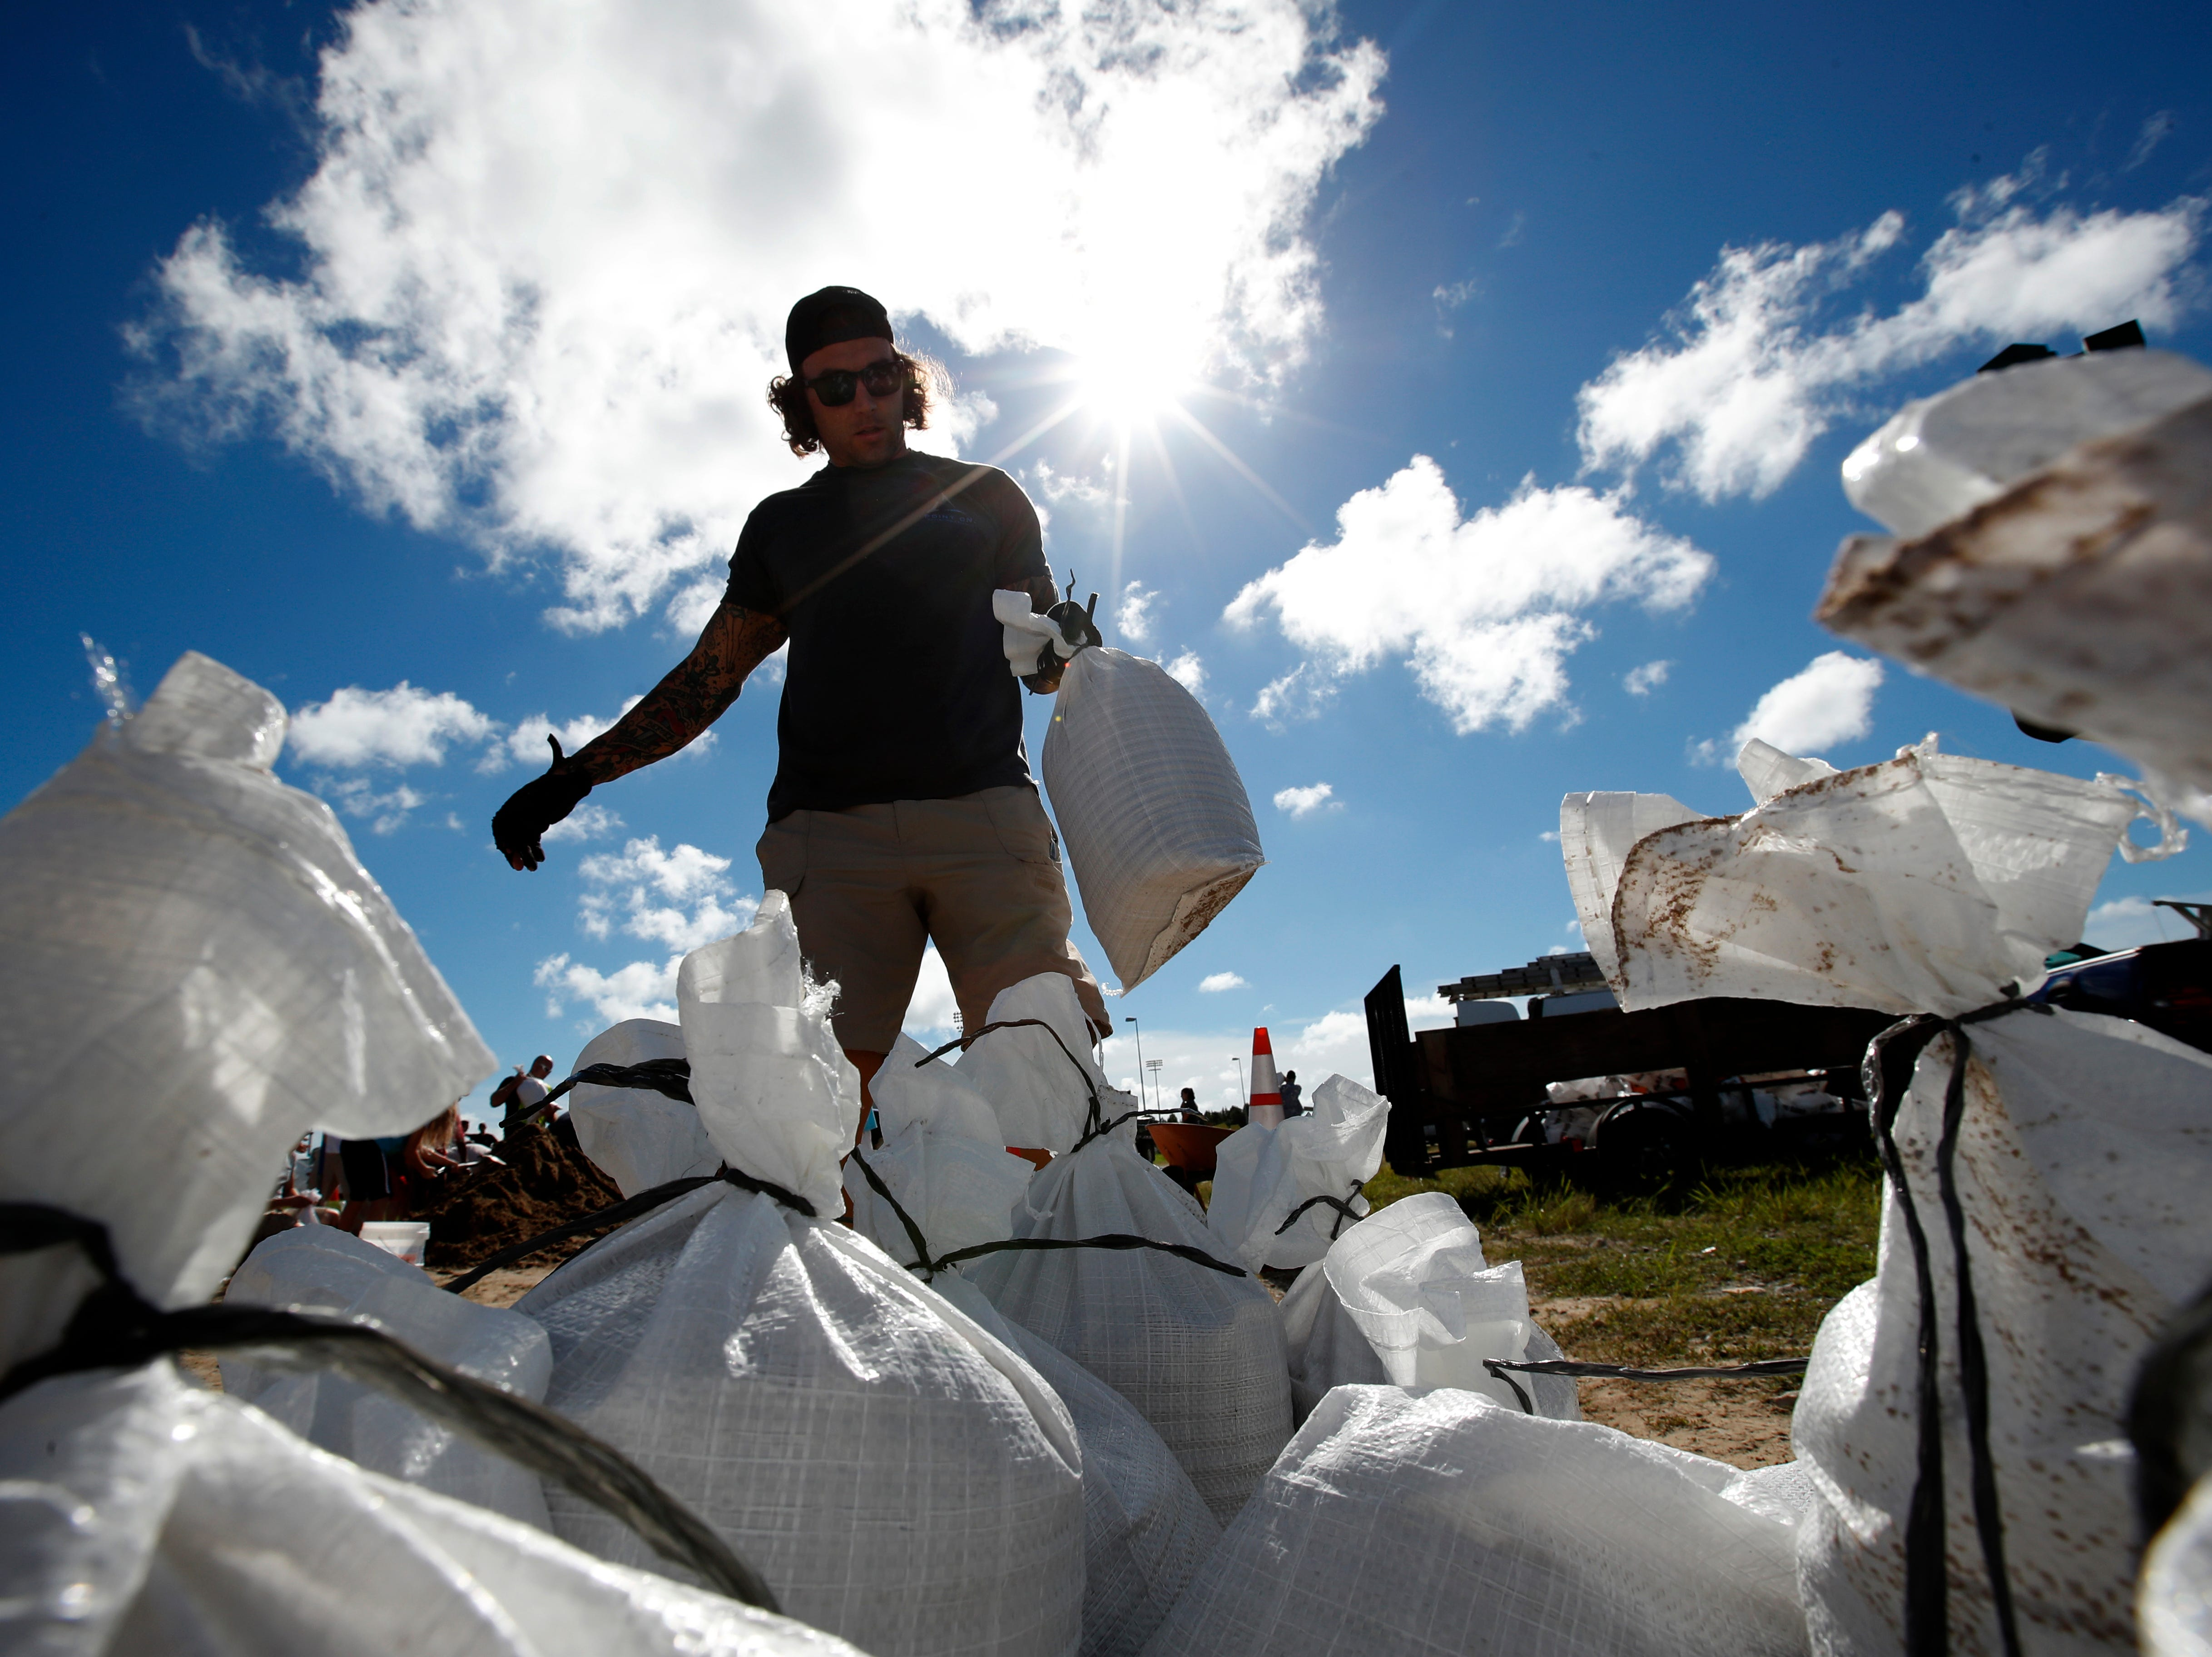 A Virginia Beach, Va., resident moves a sandbag before loading it in his truck, Wednesday, Sept. 12, 2018, in Virginia Beach, Va., as Hurricane Florence moves towards the eastern shore. The National Hurricane Center's projected track had Florence hovering off the southern North Carolina coast from Thursday night until landfall Saturday morning or so, about a day later than previously expected. The track also shifted somewhat south and west, throwing Georgia into peril as Florence moves inland.